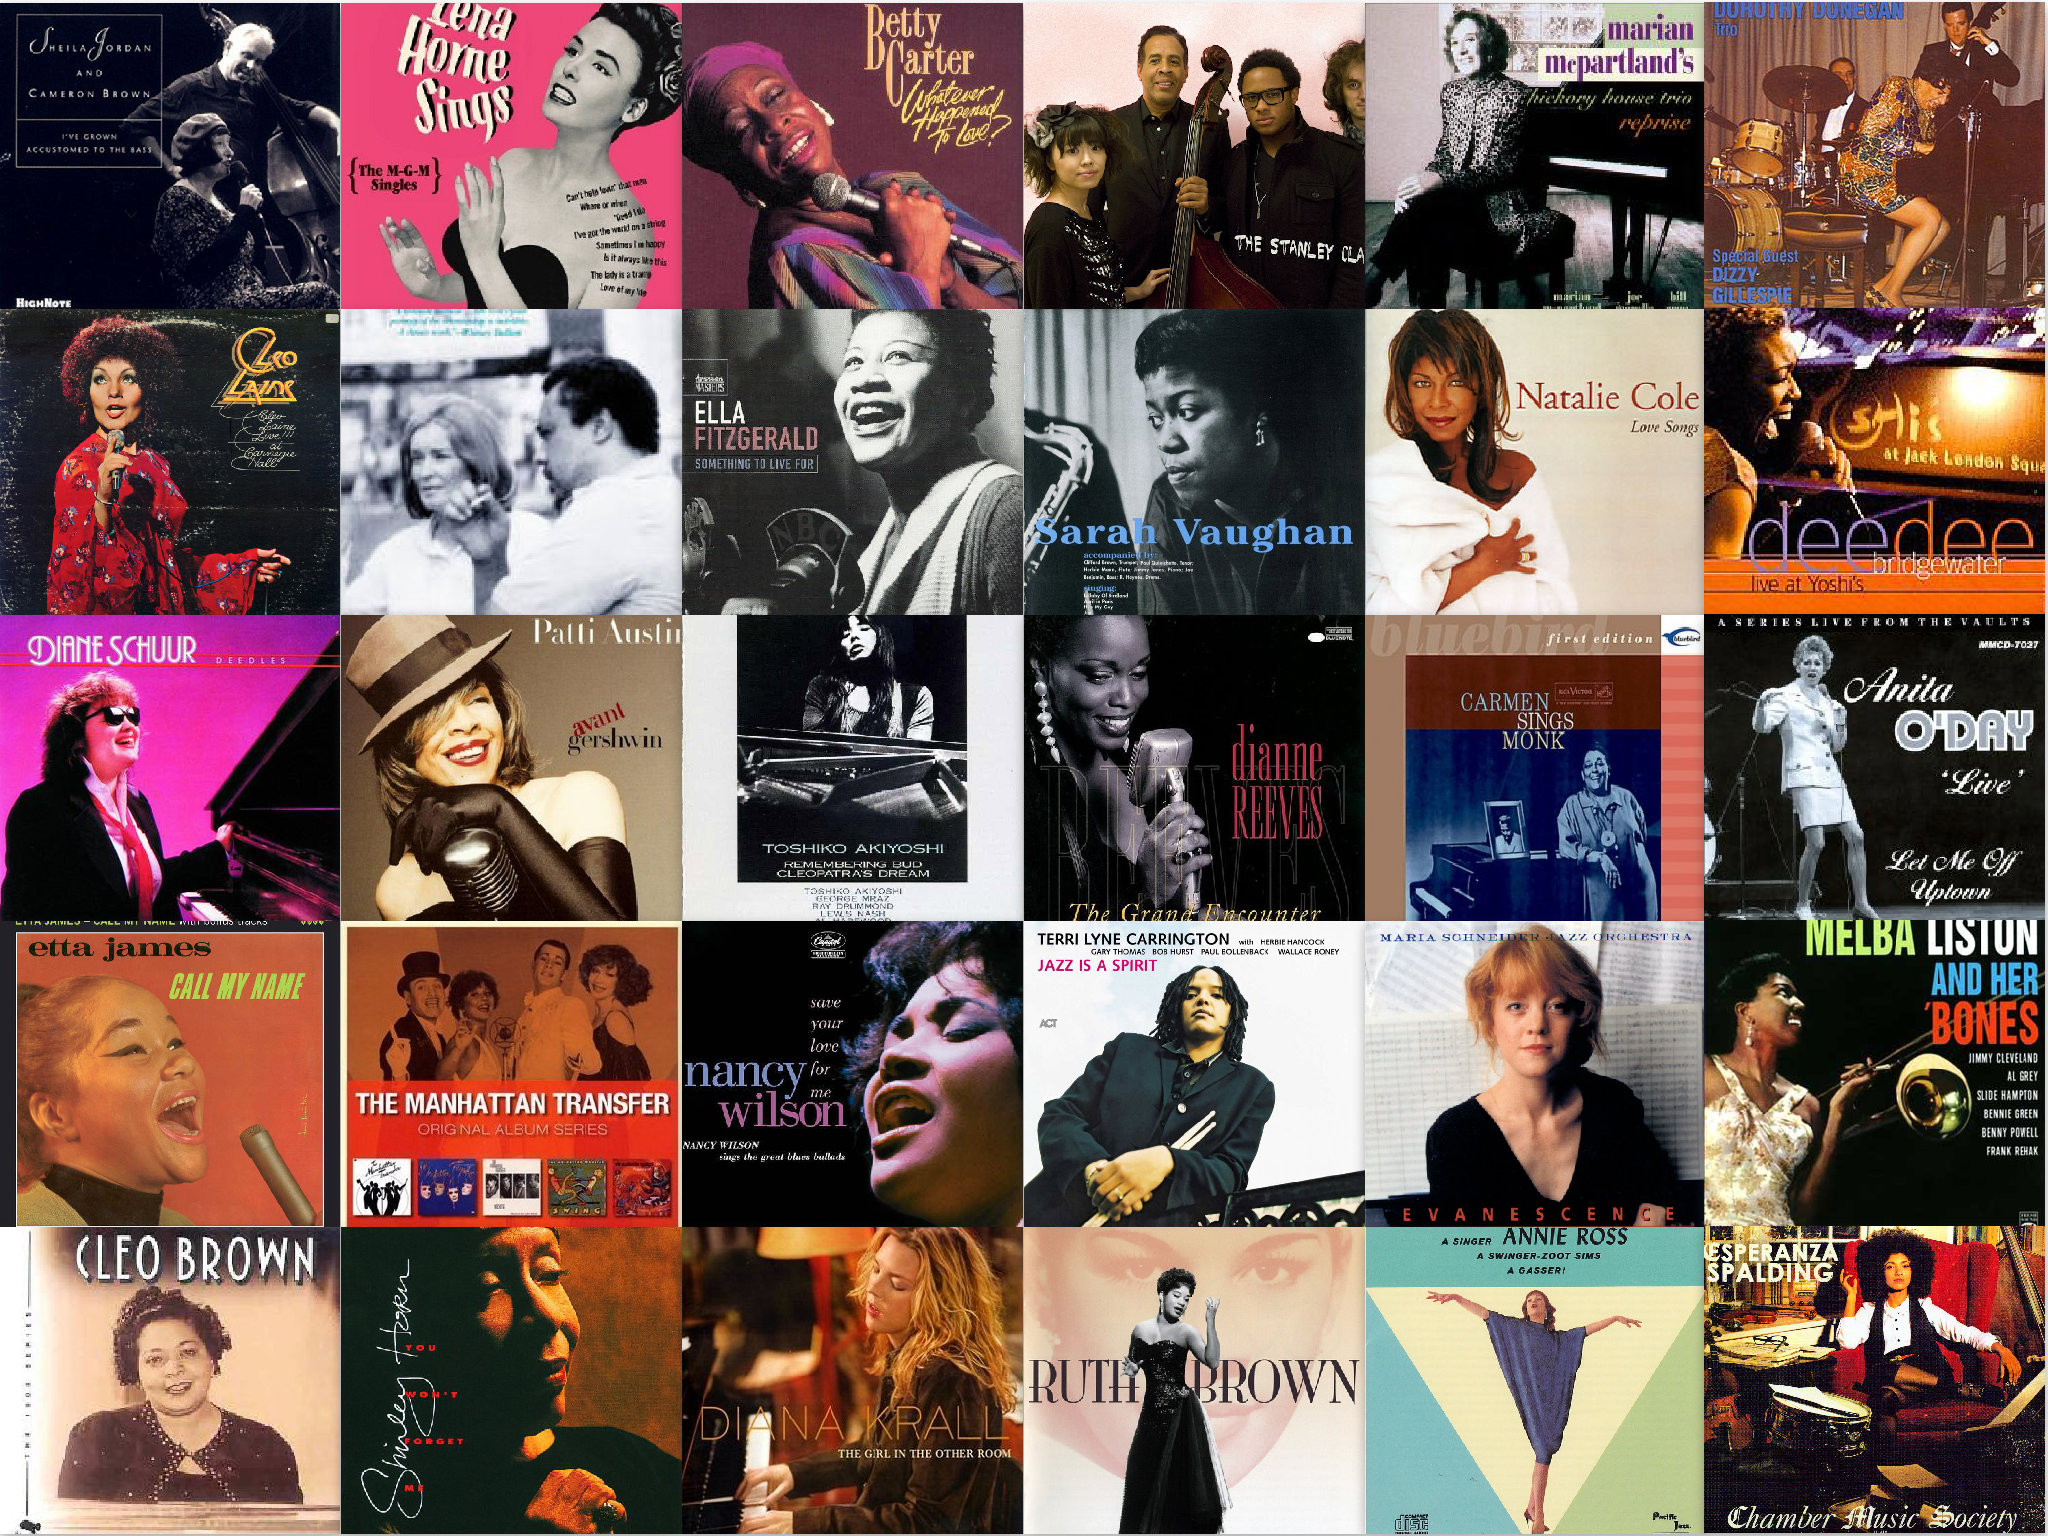 Collage of jazz albums by female Grammy Award winners and NEA Jazz Masters honorees